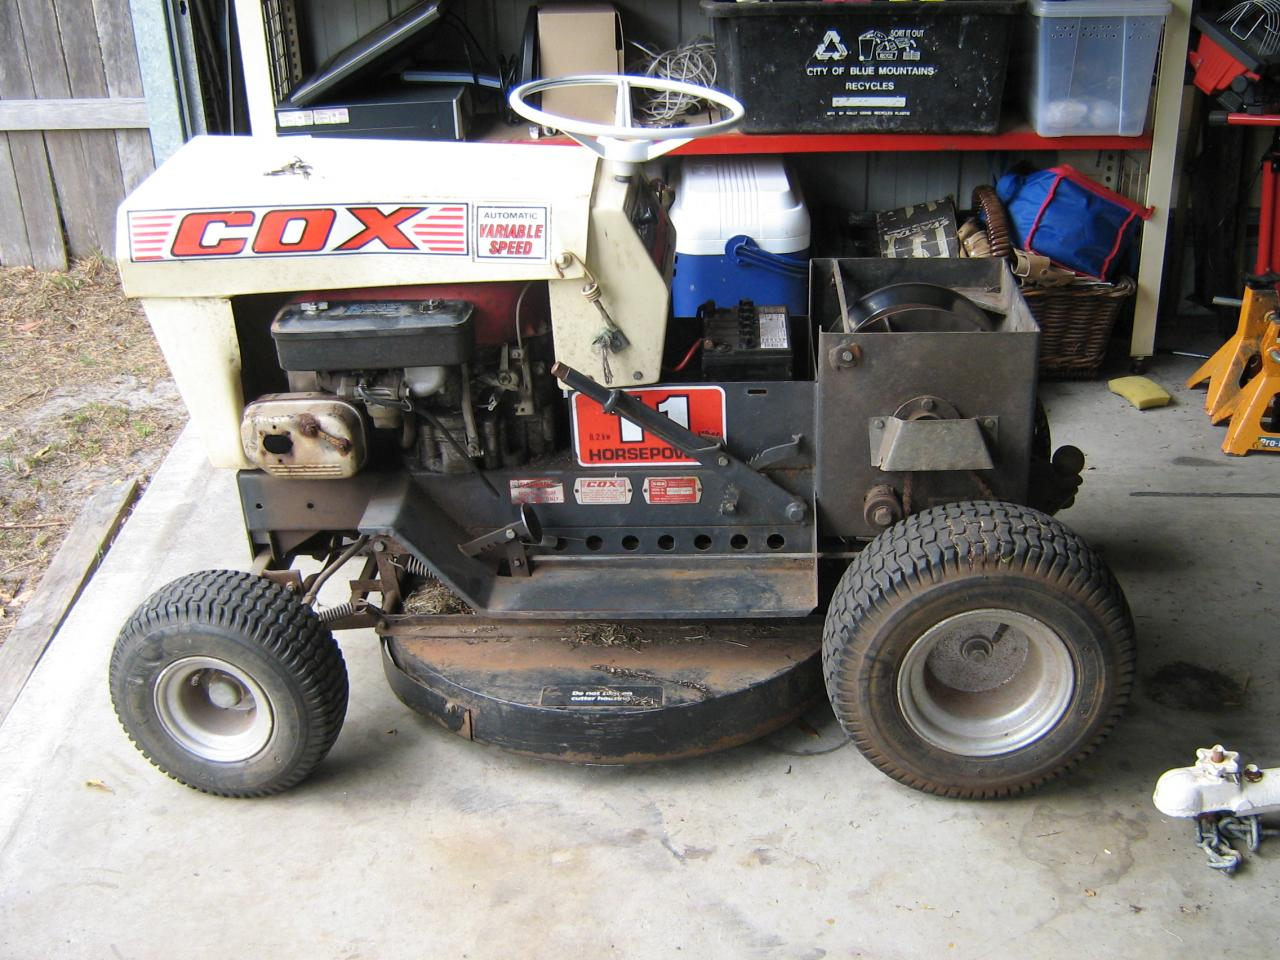 Cox 11hp What Year Model Is It Outdoorking Repair Forum